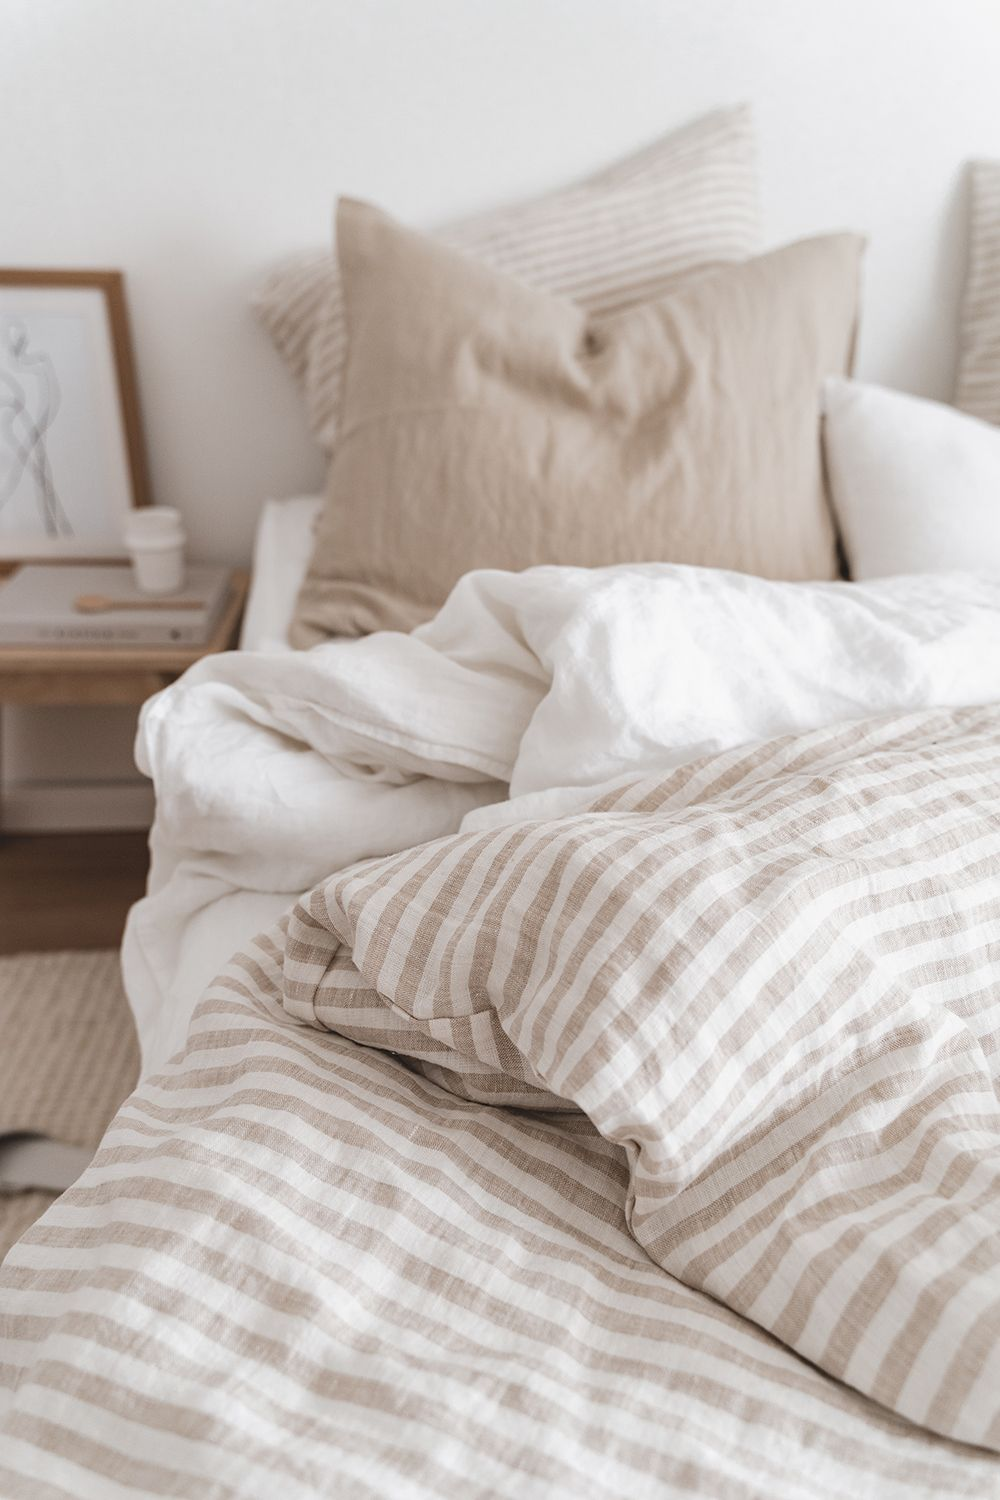 An Earthy Linen Bedding Combination Can Be Everything But Boring Discover Our Collection Of Striped Linen Bedding Bedroom Styled And Photographed Home Bedroom